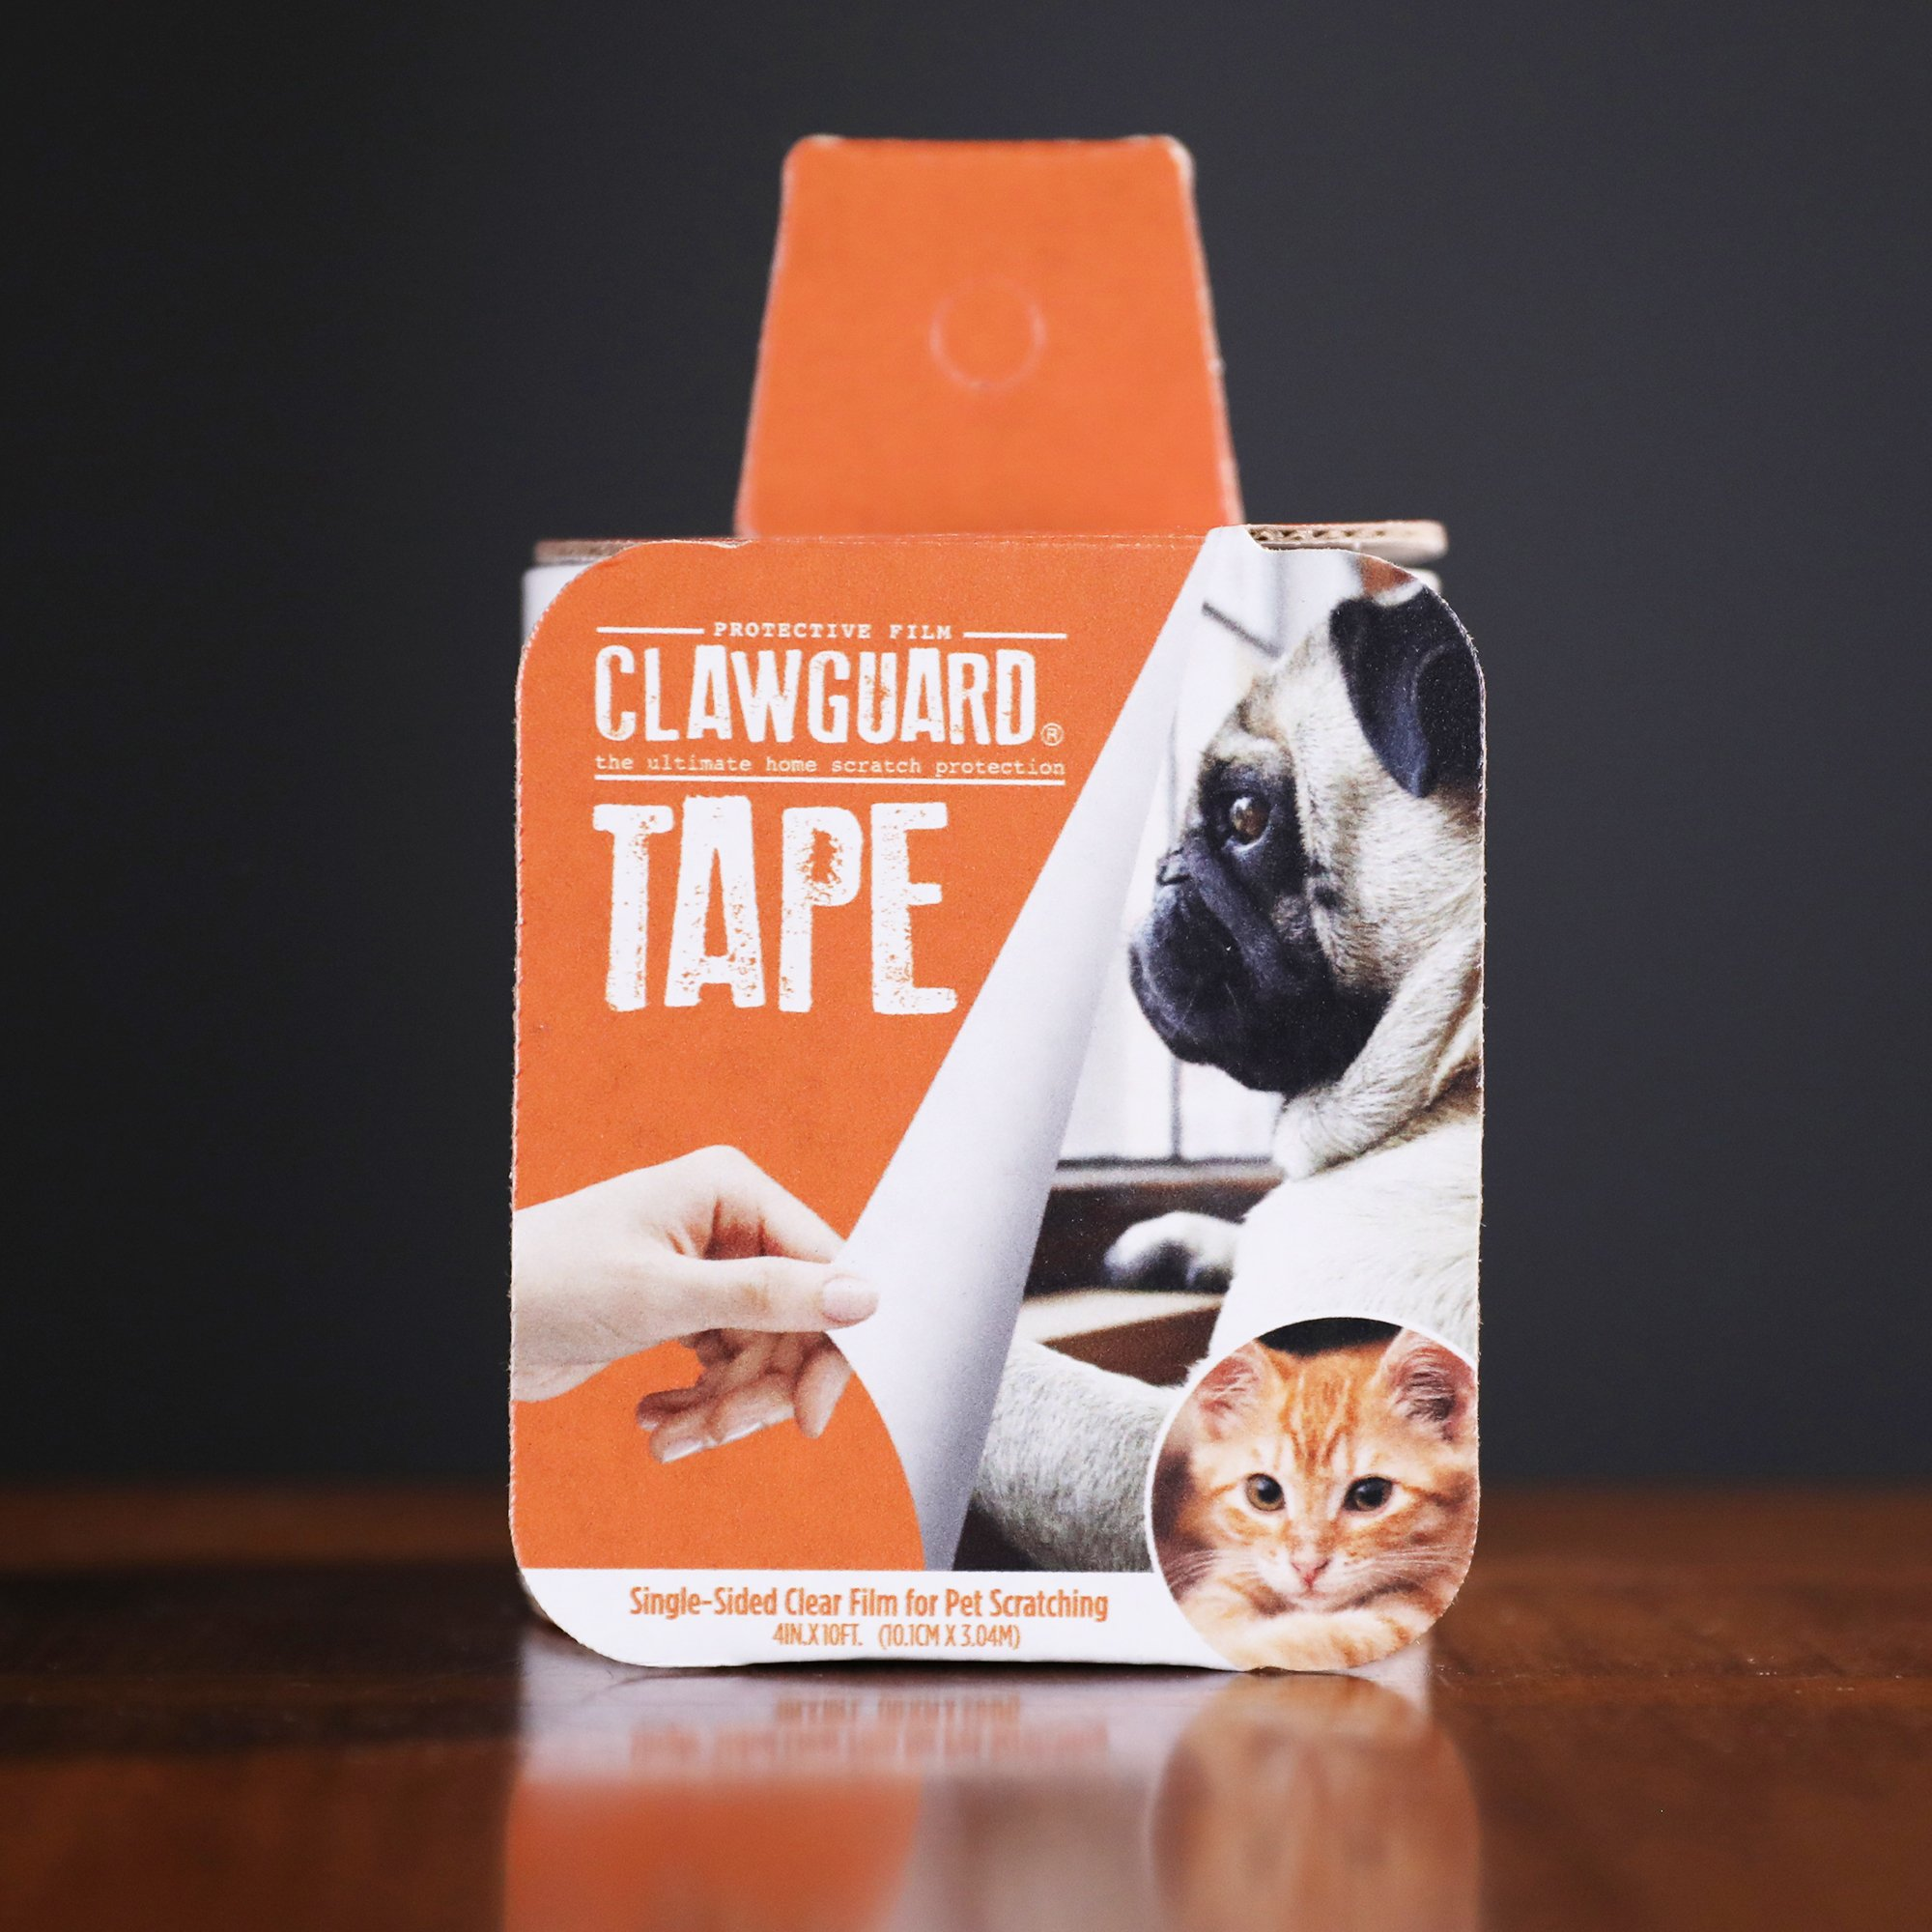 CLAWGUARD Protection TAPE - Durable Shield Protection against Cat and Dog Scratching Furniture, Couch, Window sill, Car door, Glass and more!